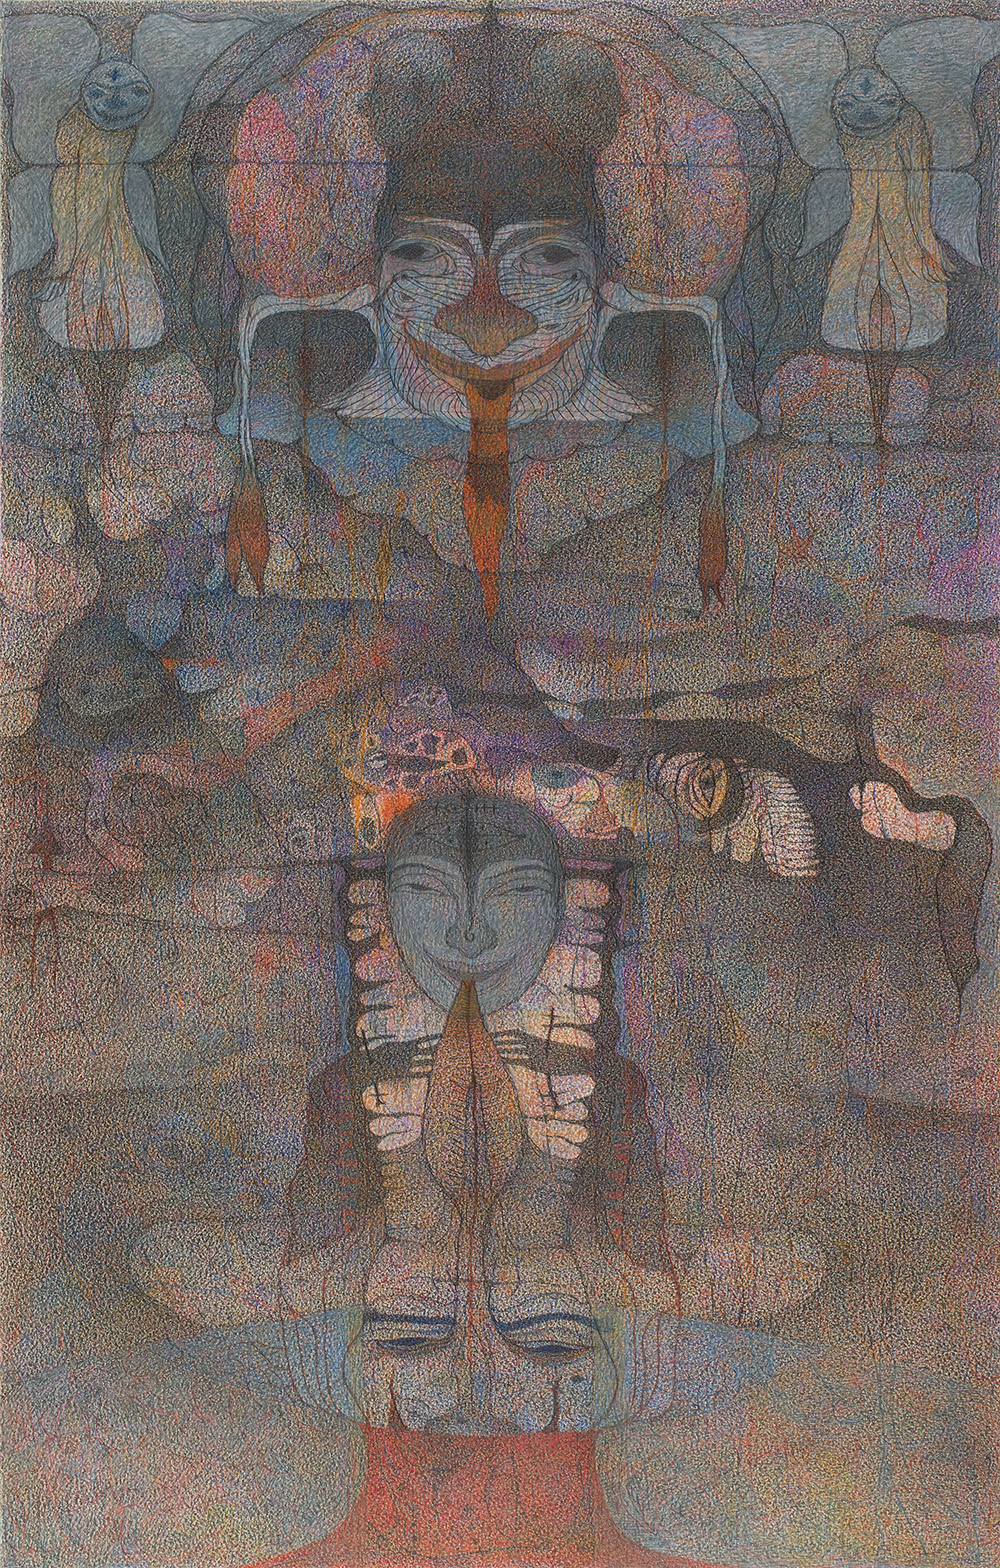 M'onma Untitled, 2004 Colored pencil on paper 27.56 x 17.6 inches 70 x 44.7 cm IMo 63